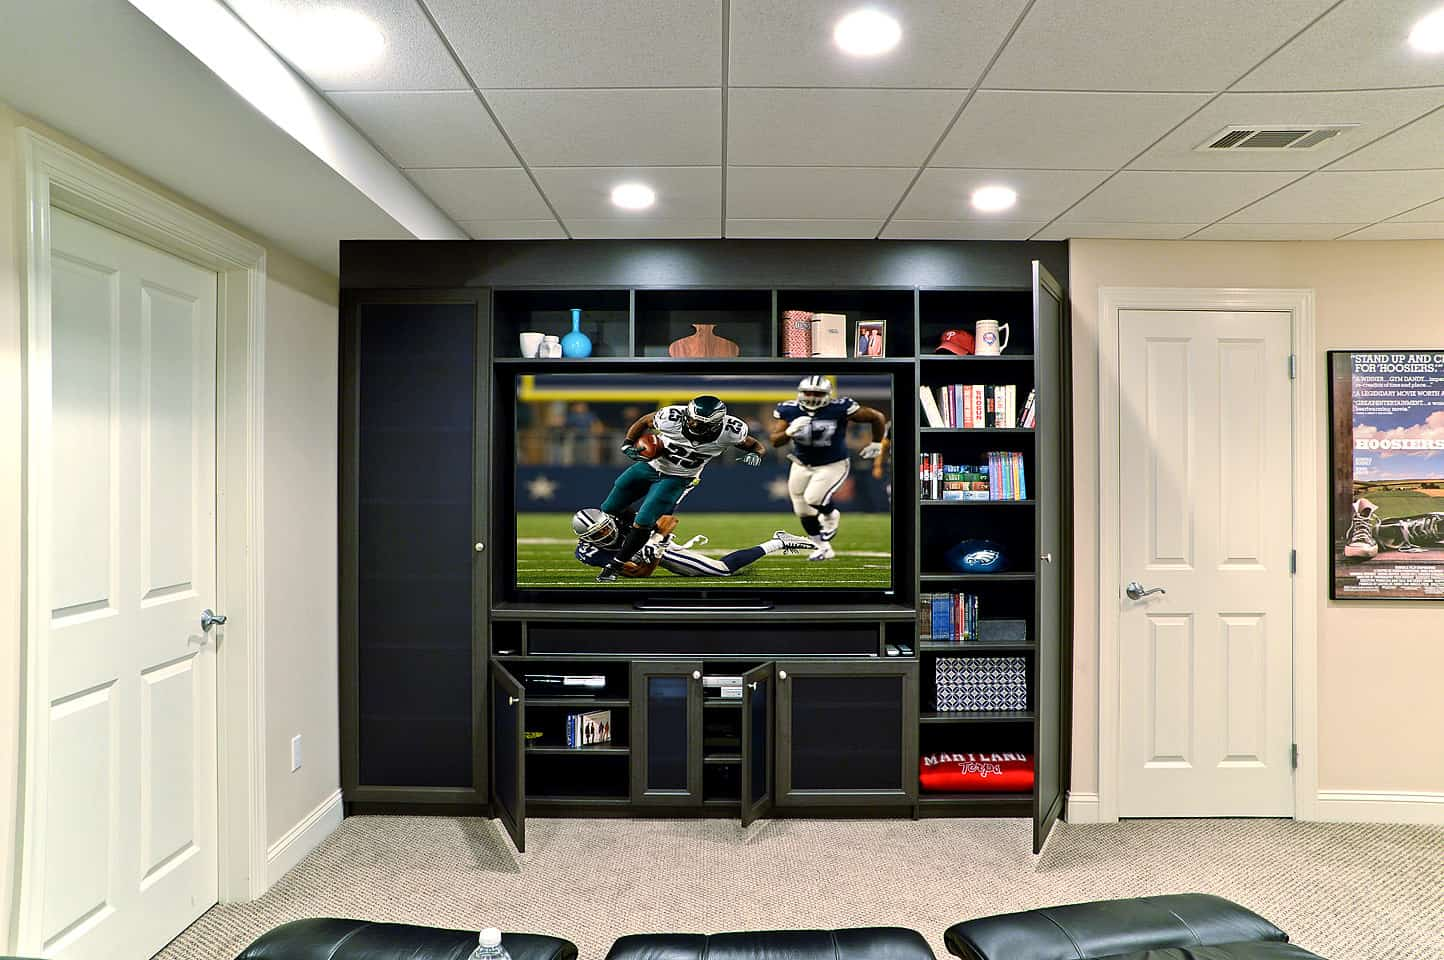 Built-in entertainment system for a wall mounted TV.